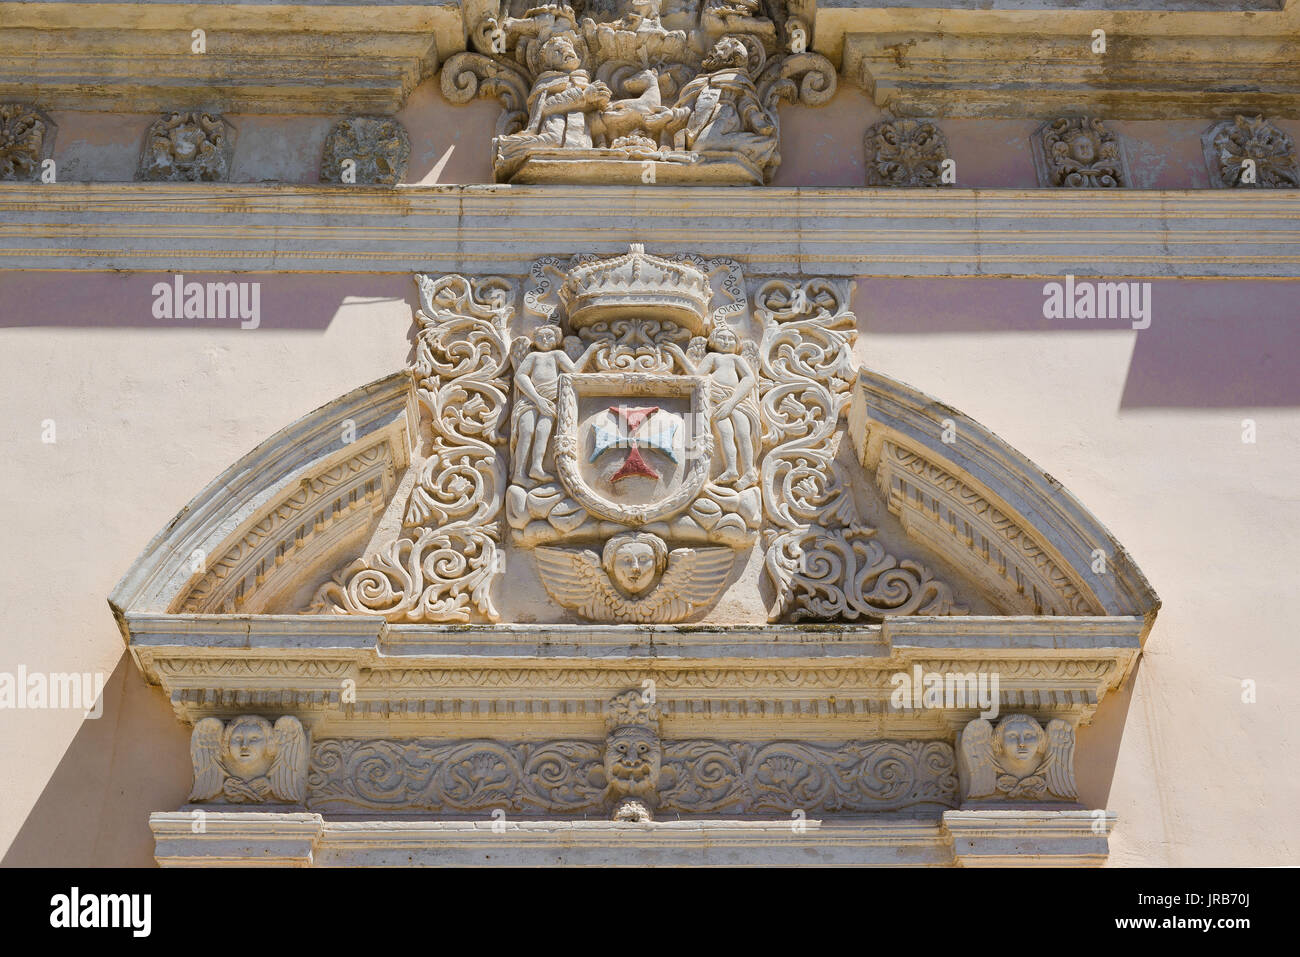 Baroque broken pediment sited above the west door of the Chiesa della S. Trinita church in Sassari, Sardinia. - Stock Image